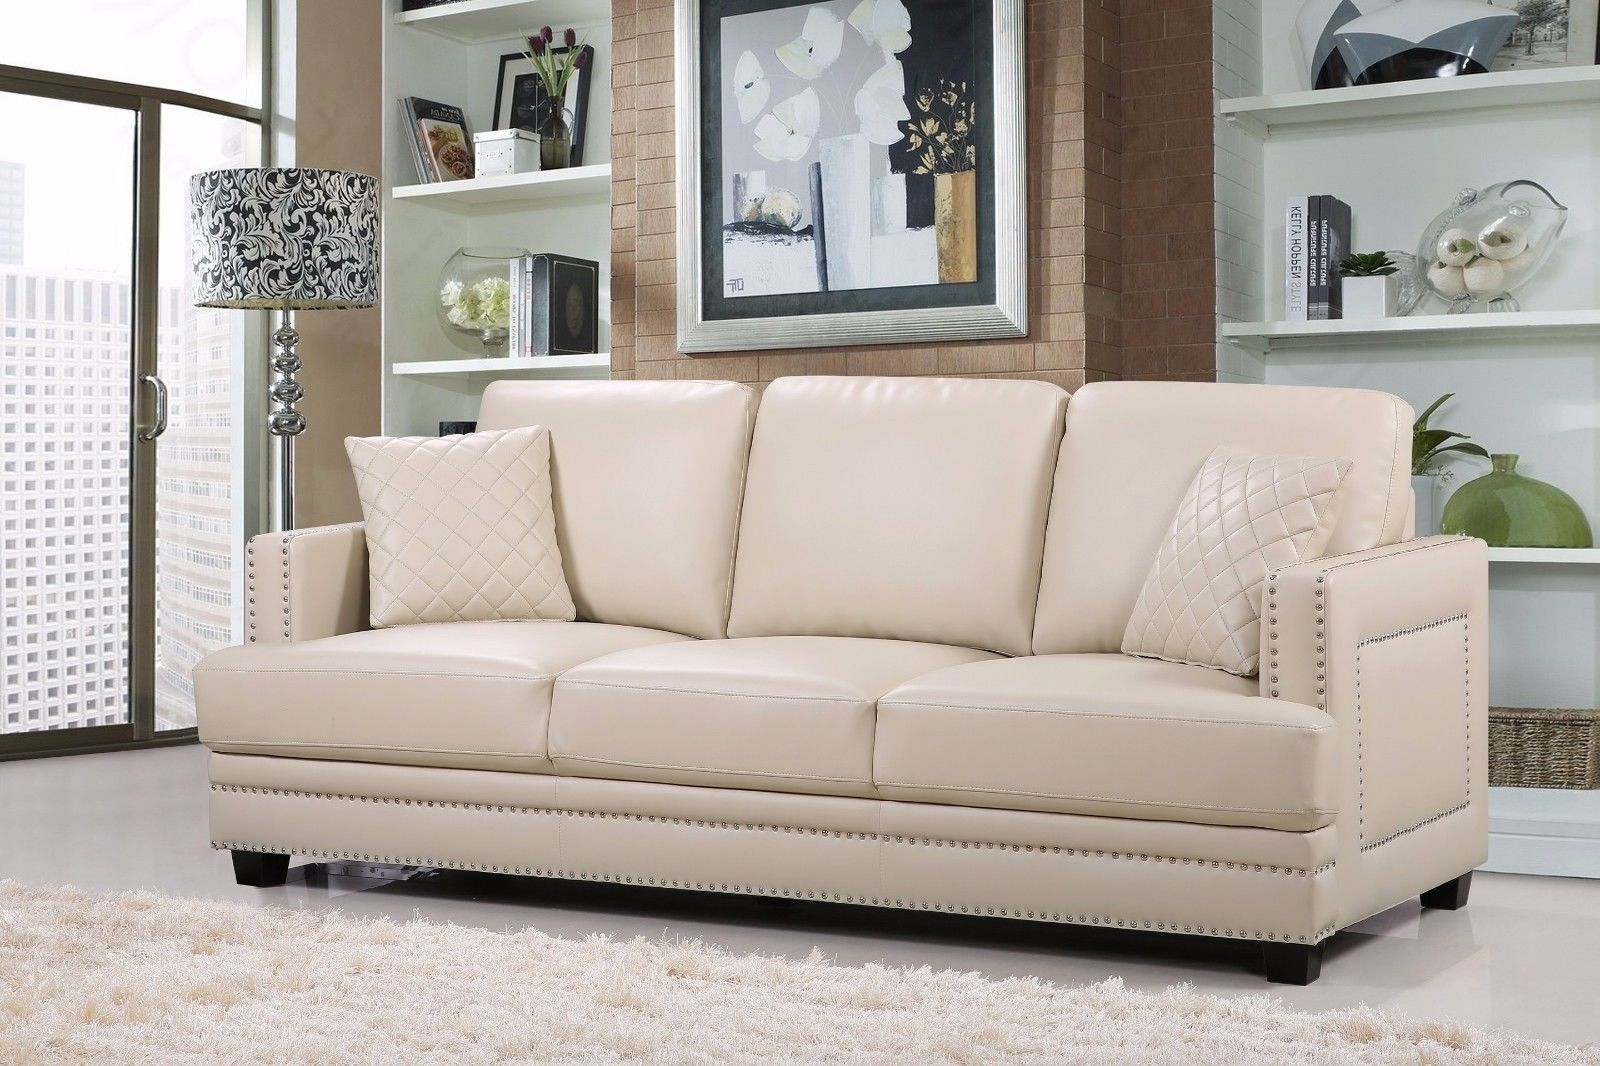 Meridian 655 Bonded Leather Living Room Sofa Beige Contemporary Style